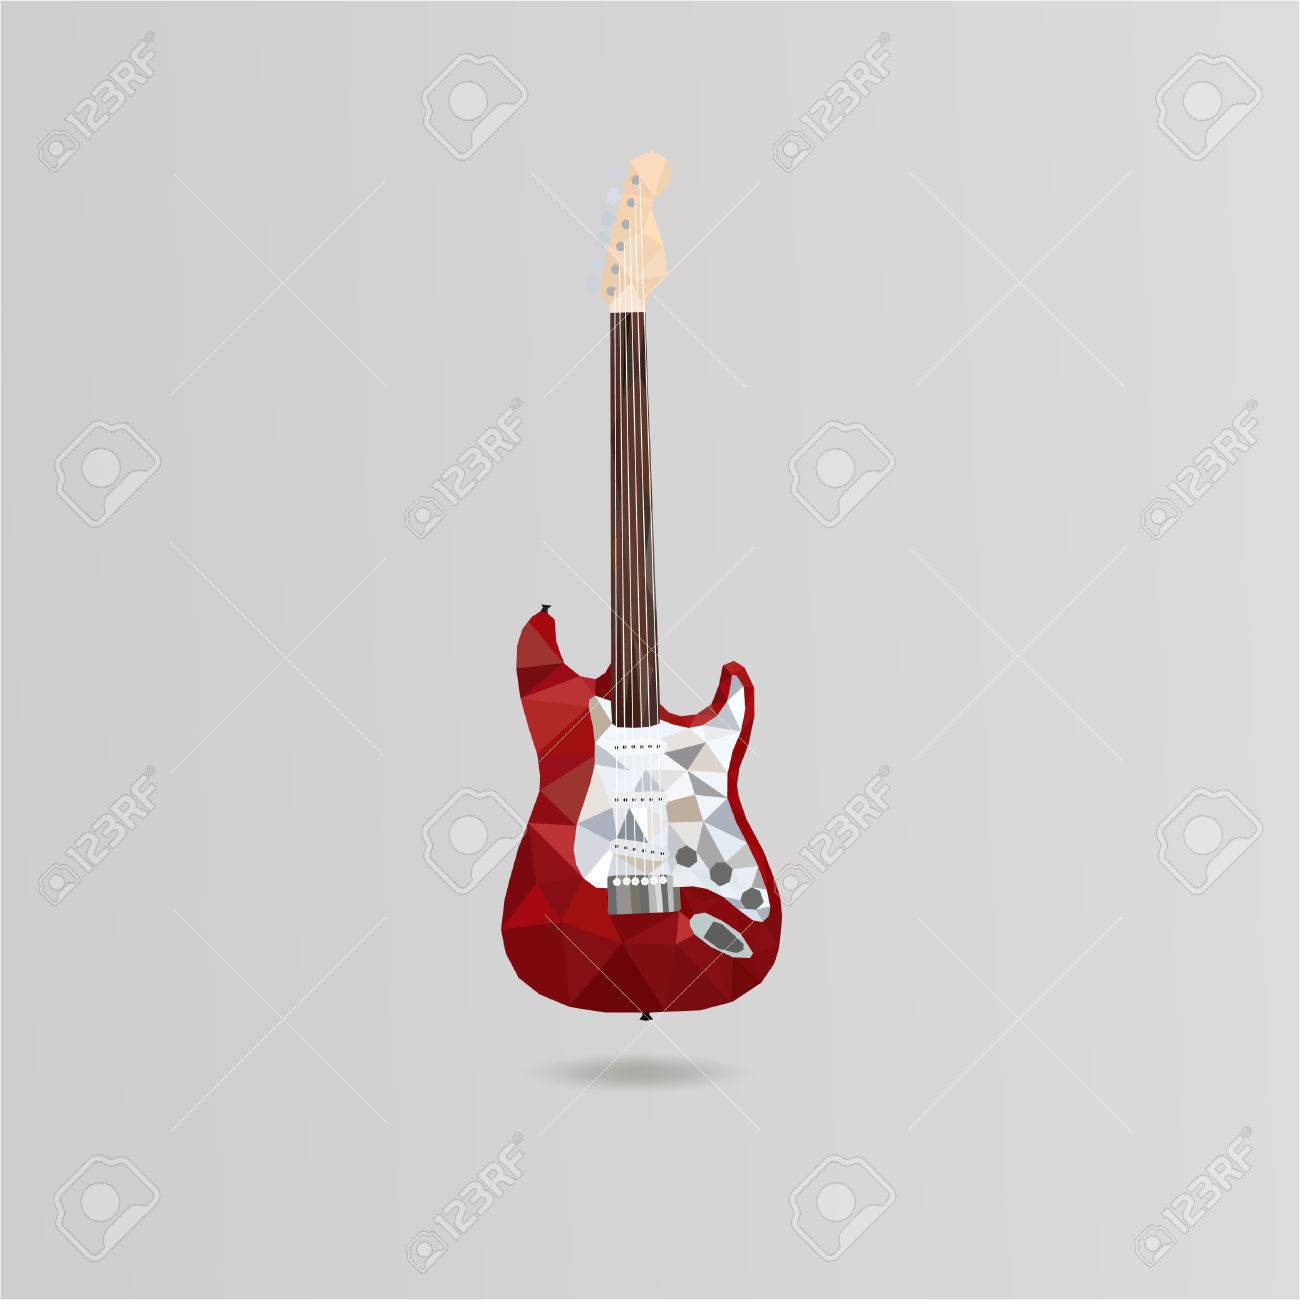 Illustration Icon Electric Guitar In Style Low Poly Basic